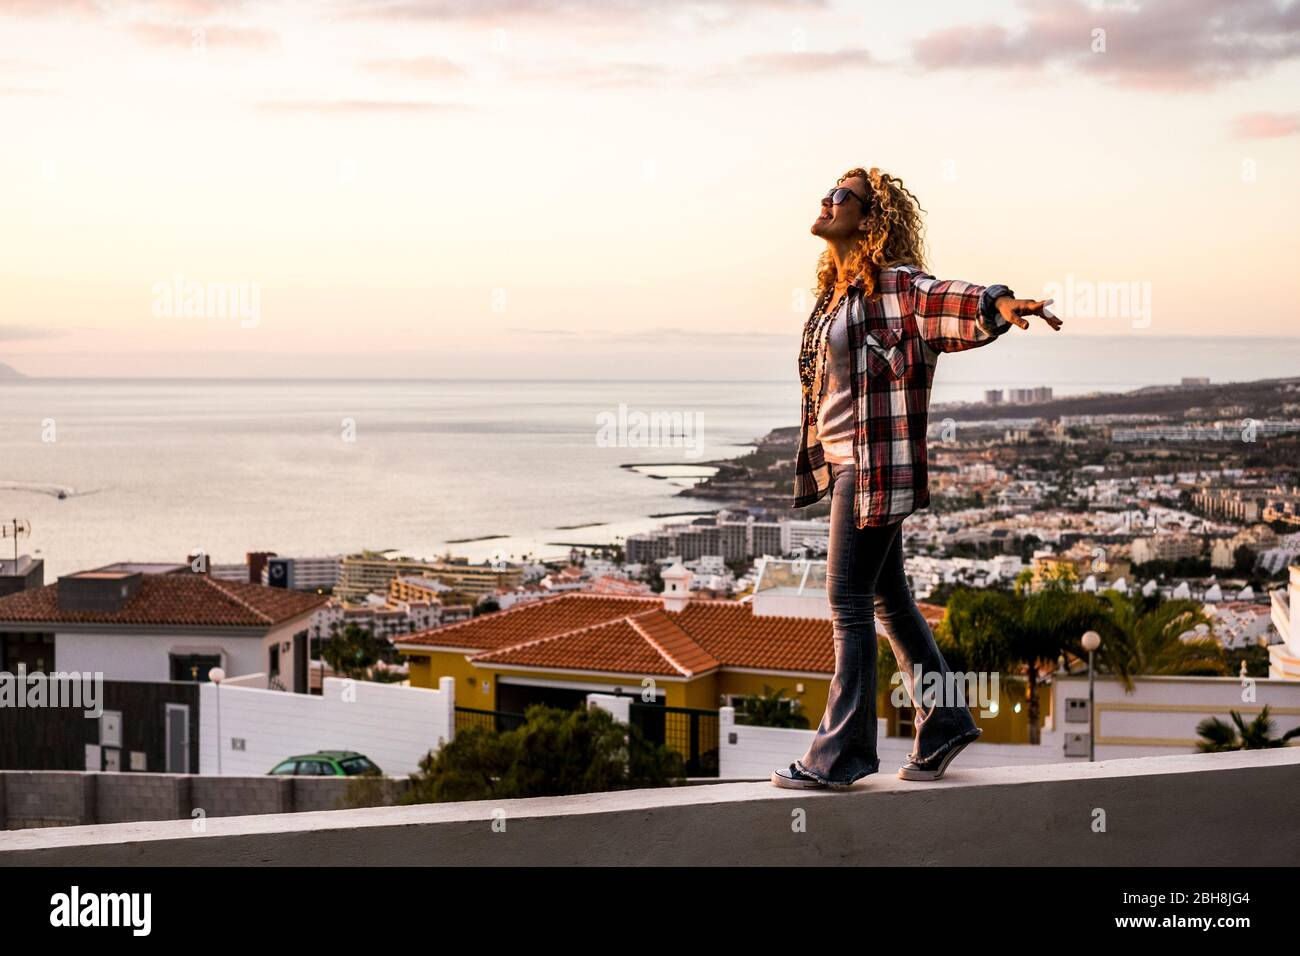 Creativity happiness freedom and craziness concept with young beautiful curly blonde woman walking in balance on a wall with city and coastline down in the background - cheerful people enjoy Stock Photo